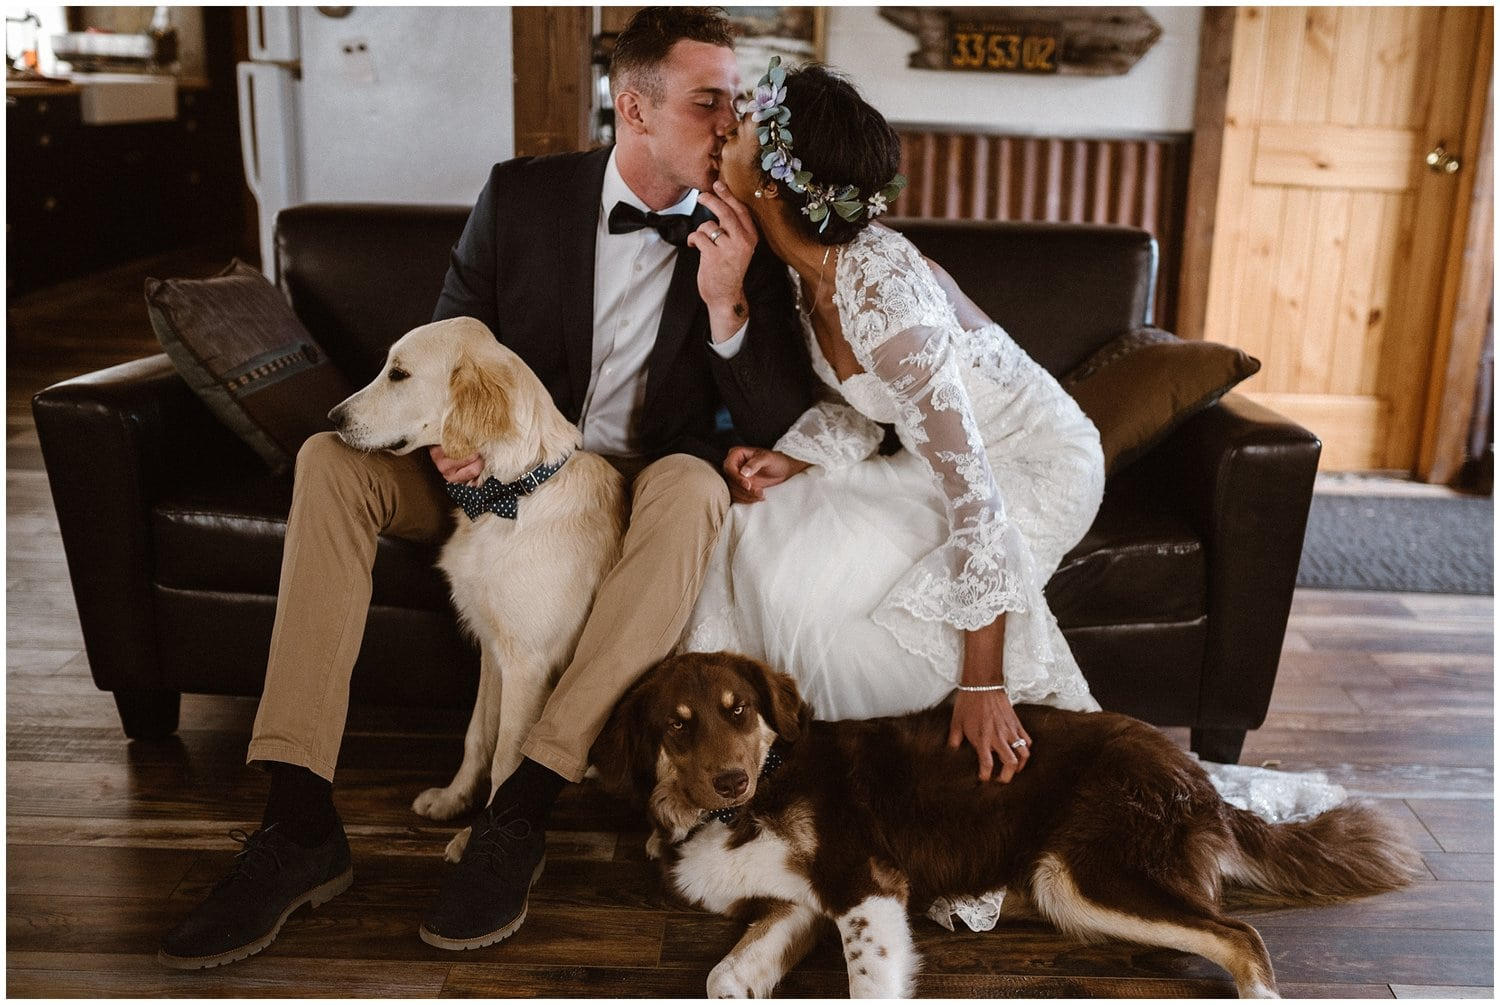 Bride and groom kiss in a room with their two dogs by their side.